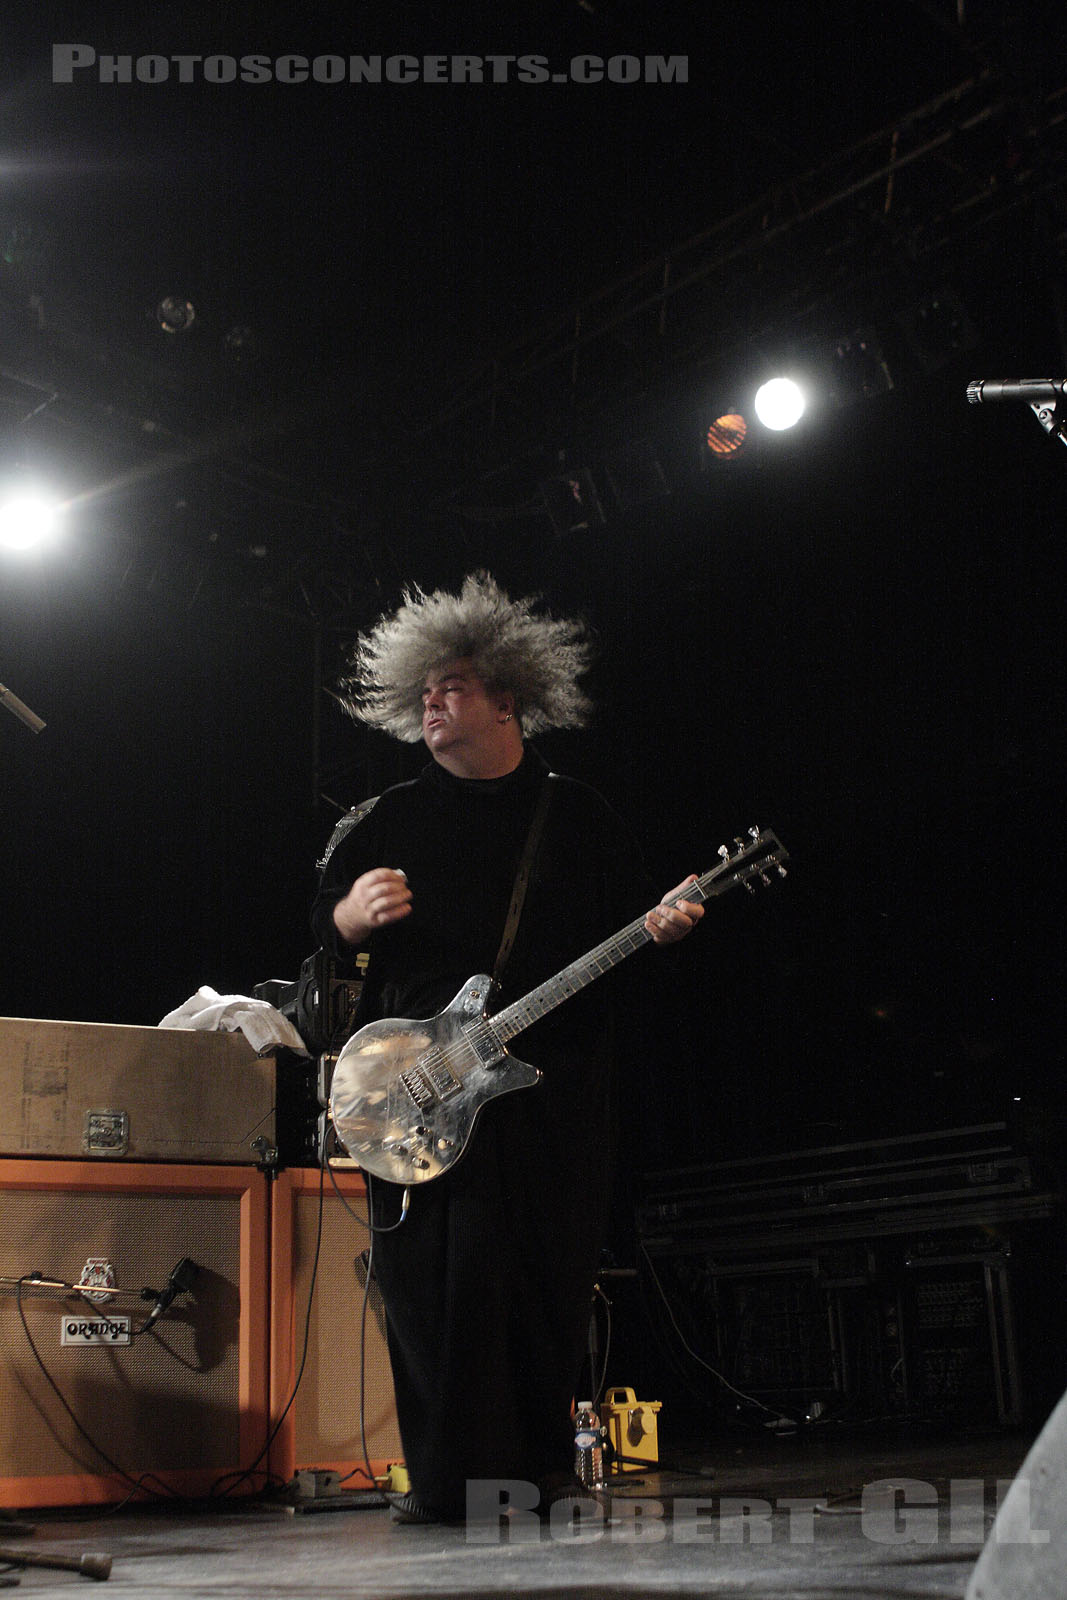 THE MELVINS - 2008-09-11 - PARIS - Elysee Montmartre